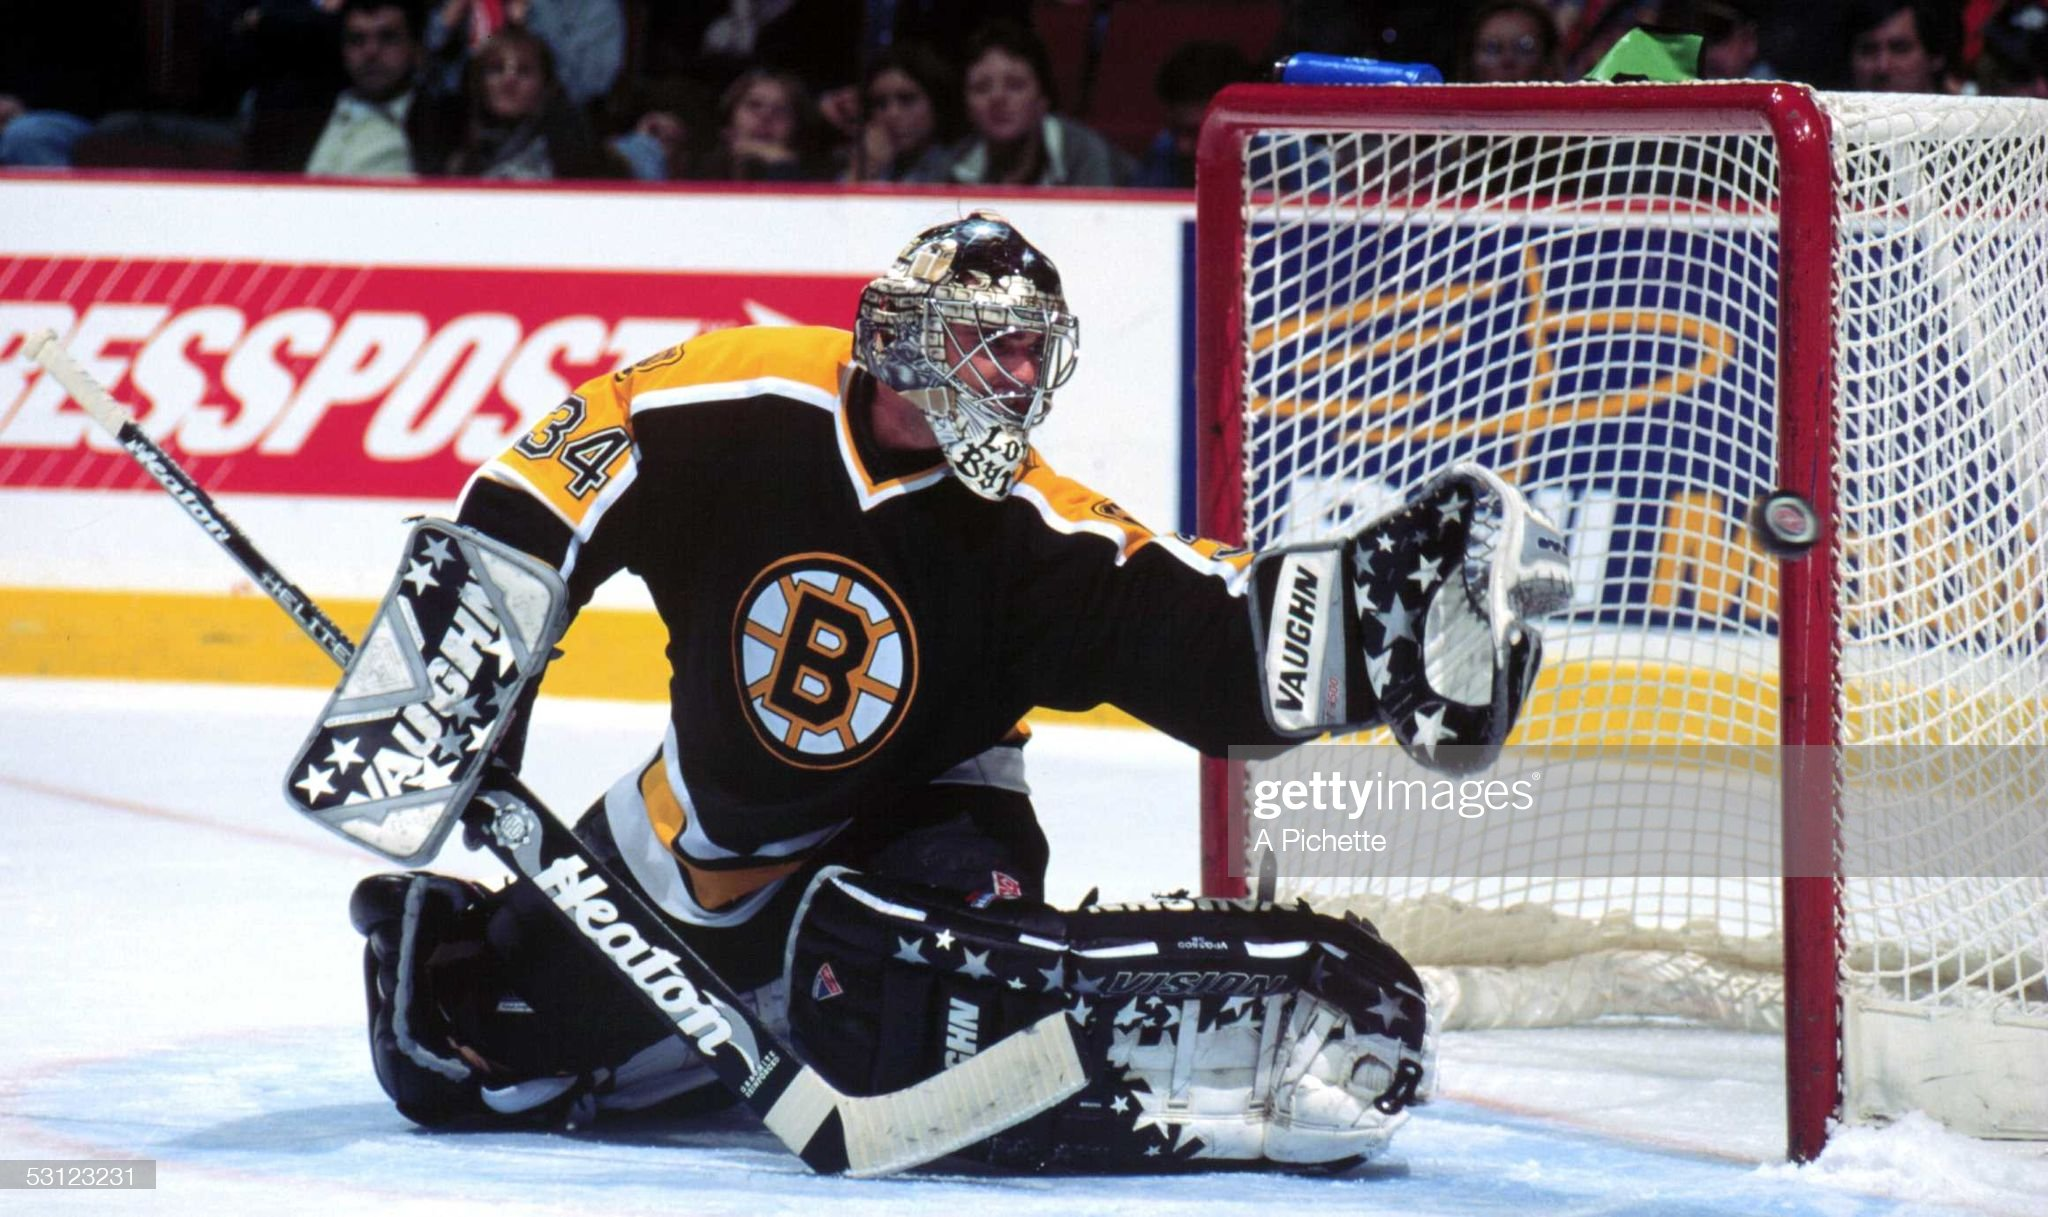 season-boston-goaltender-byron-dafoe-str